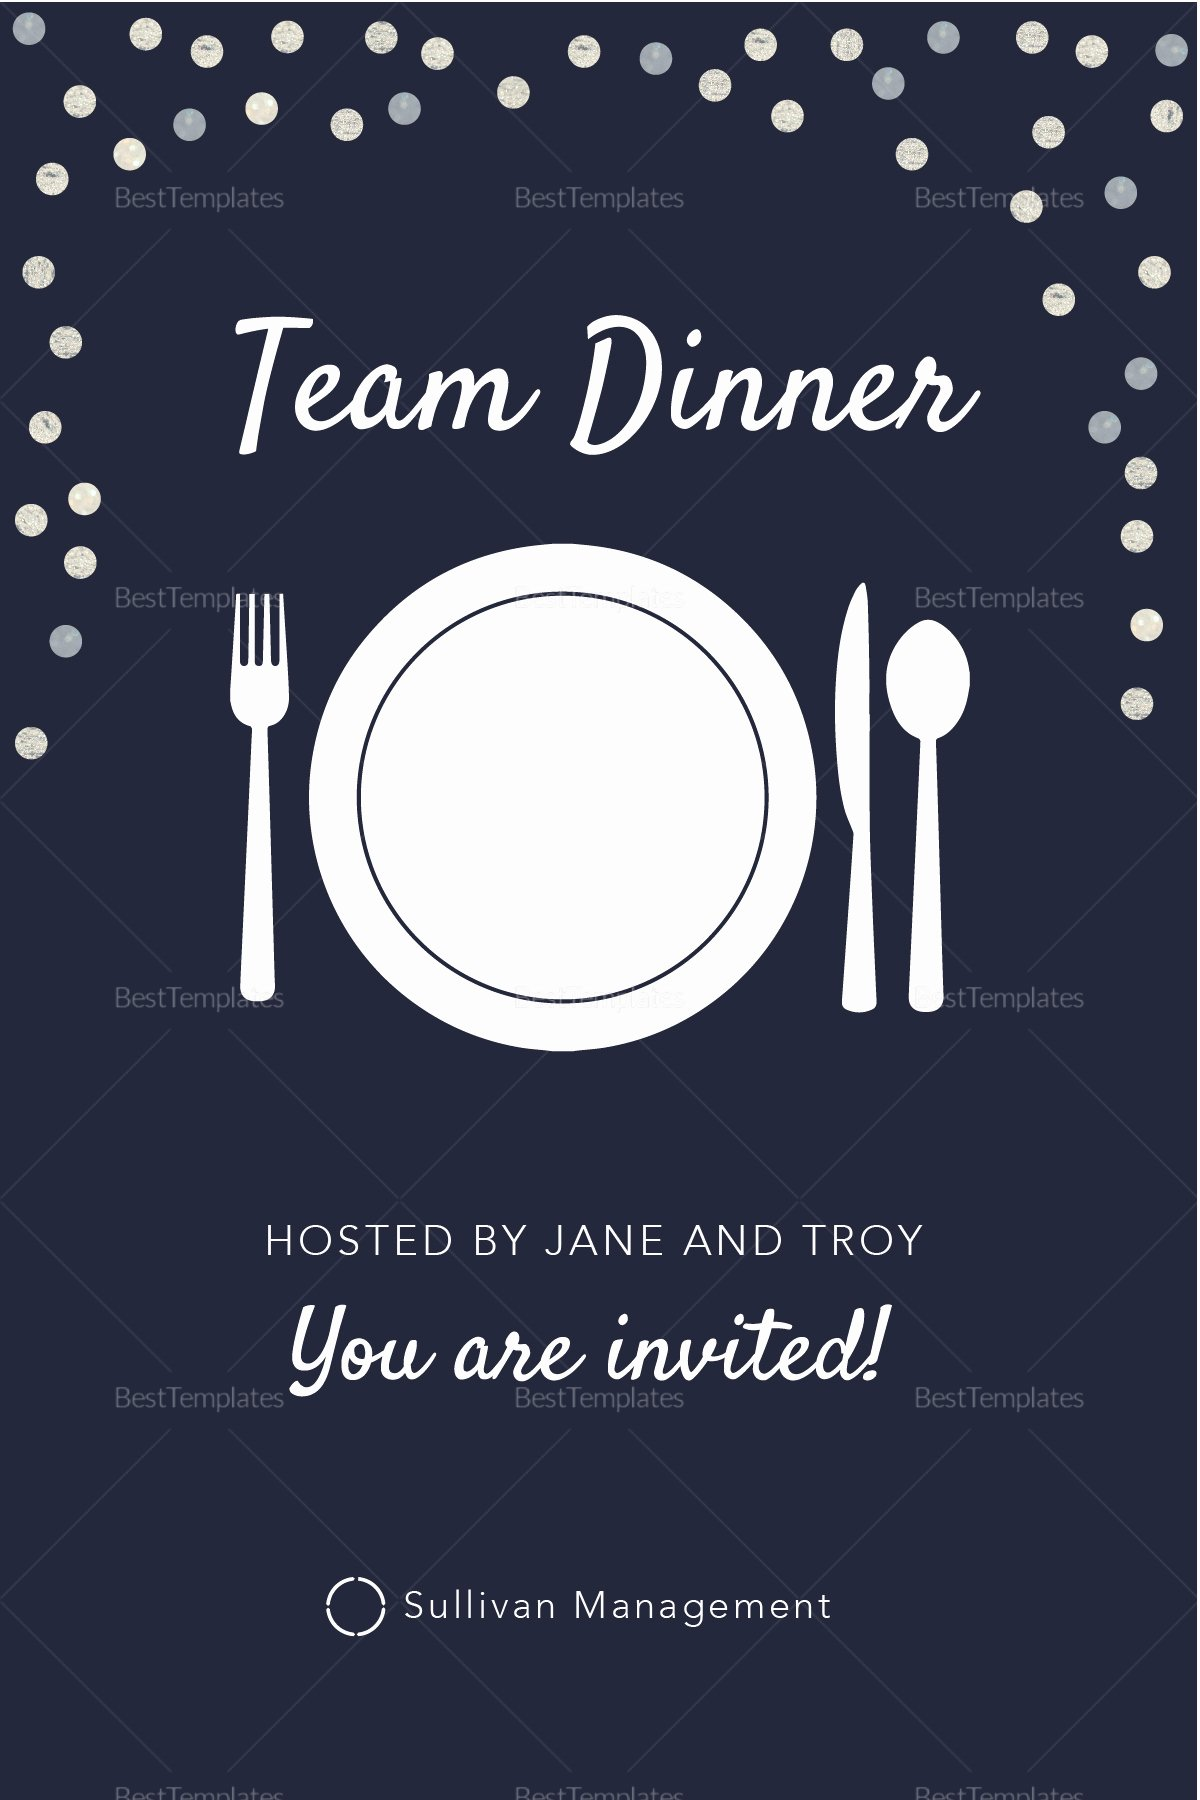 Dinner Invitation Email Template New Elegant Team Dinner Invitation Design Template In Psd